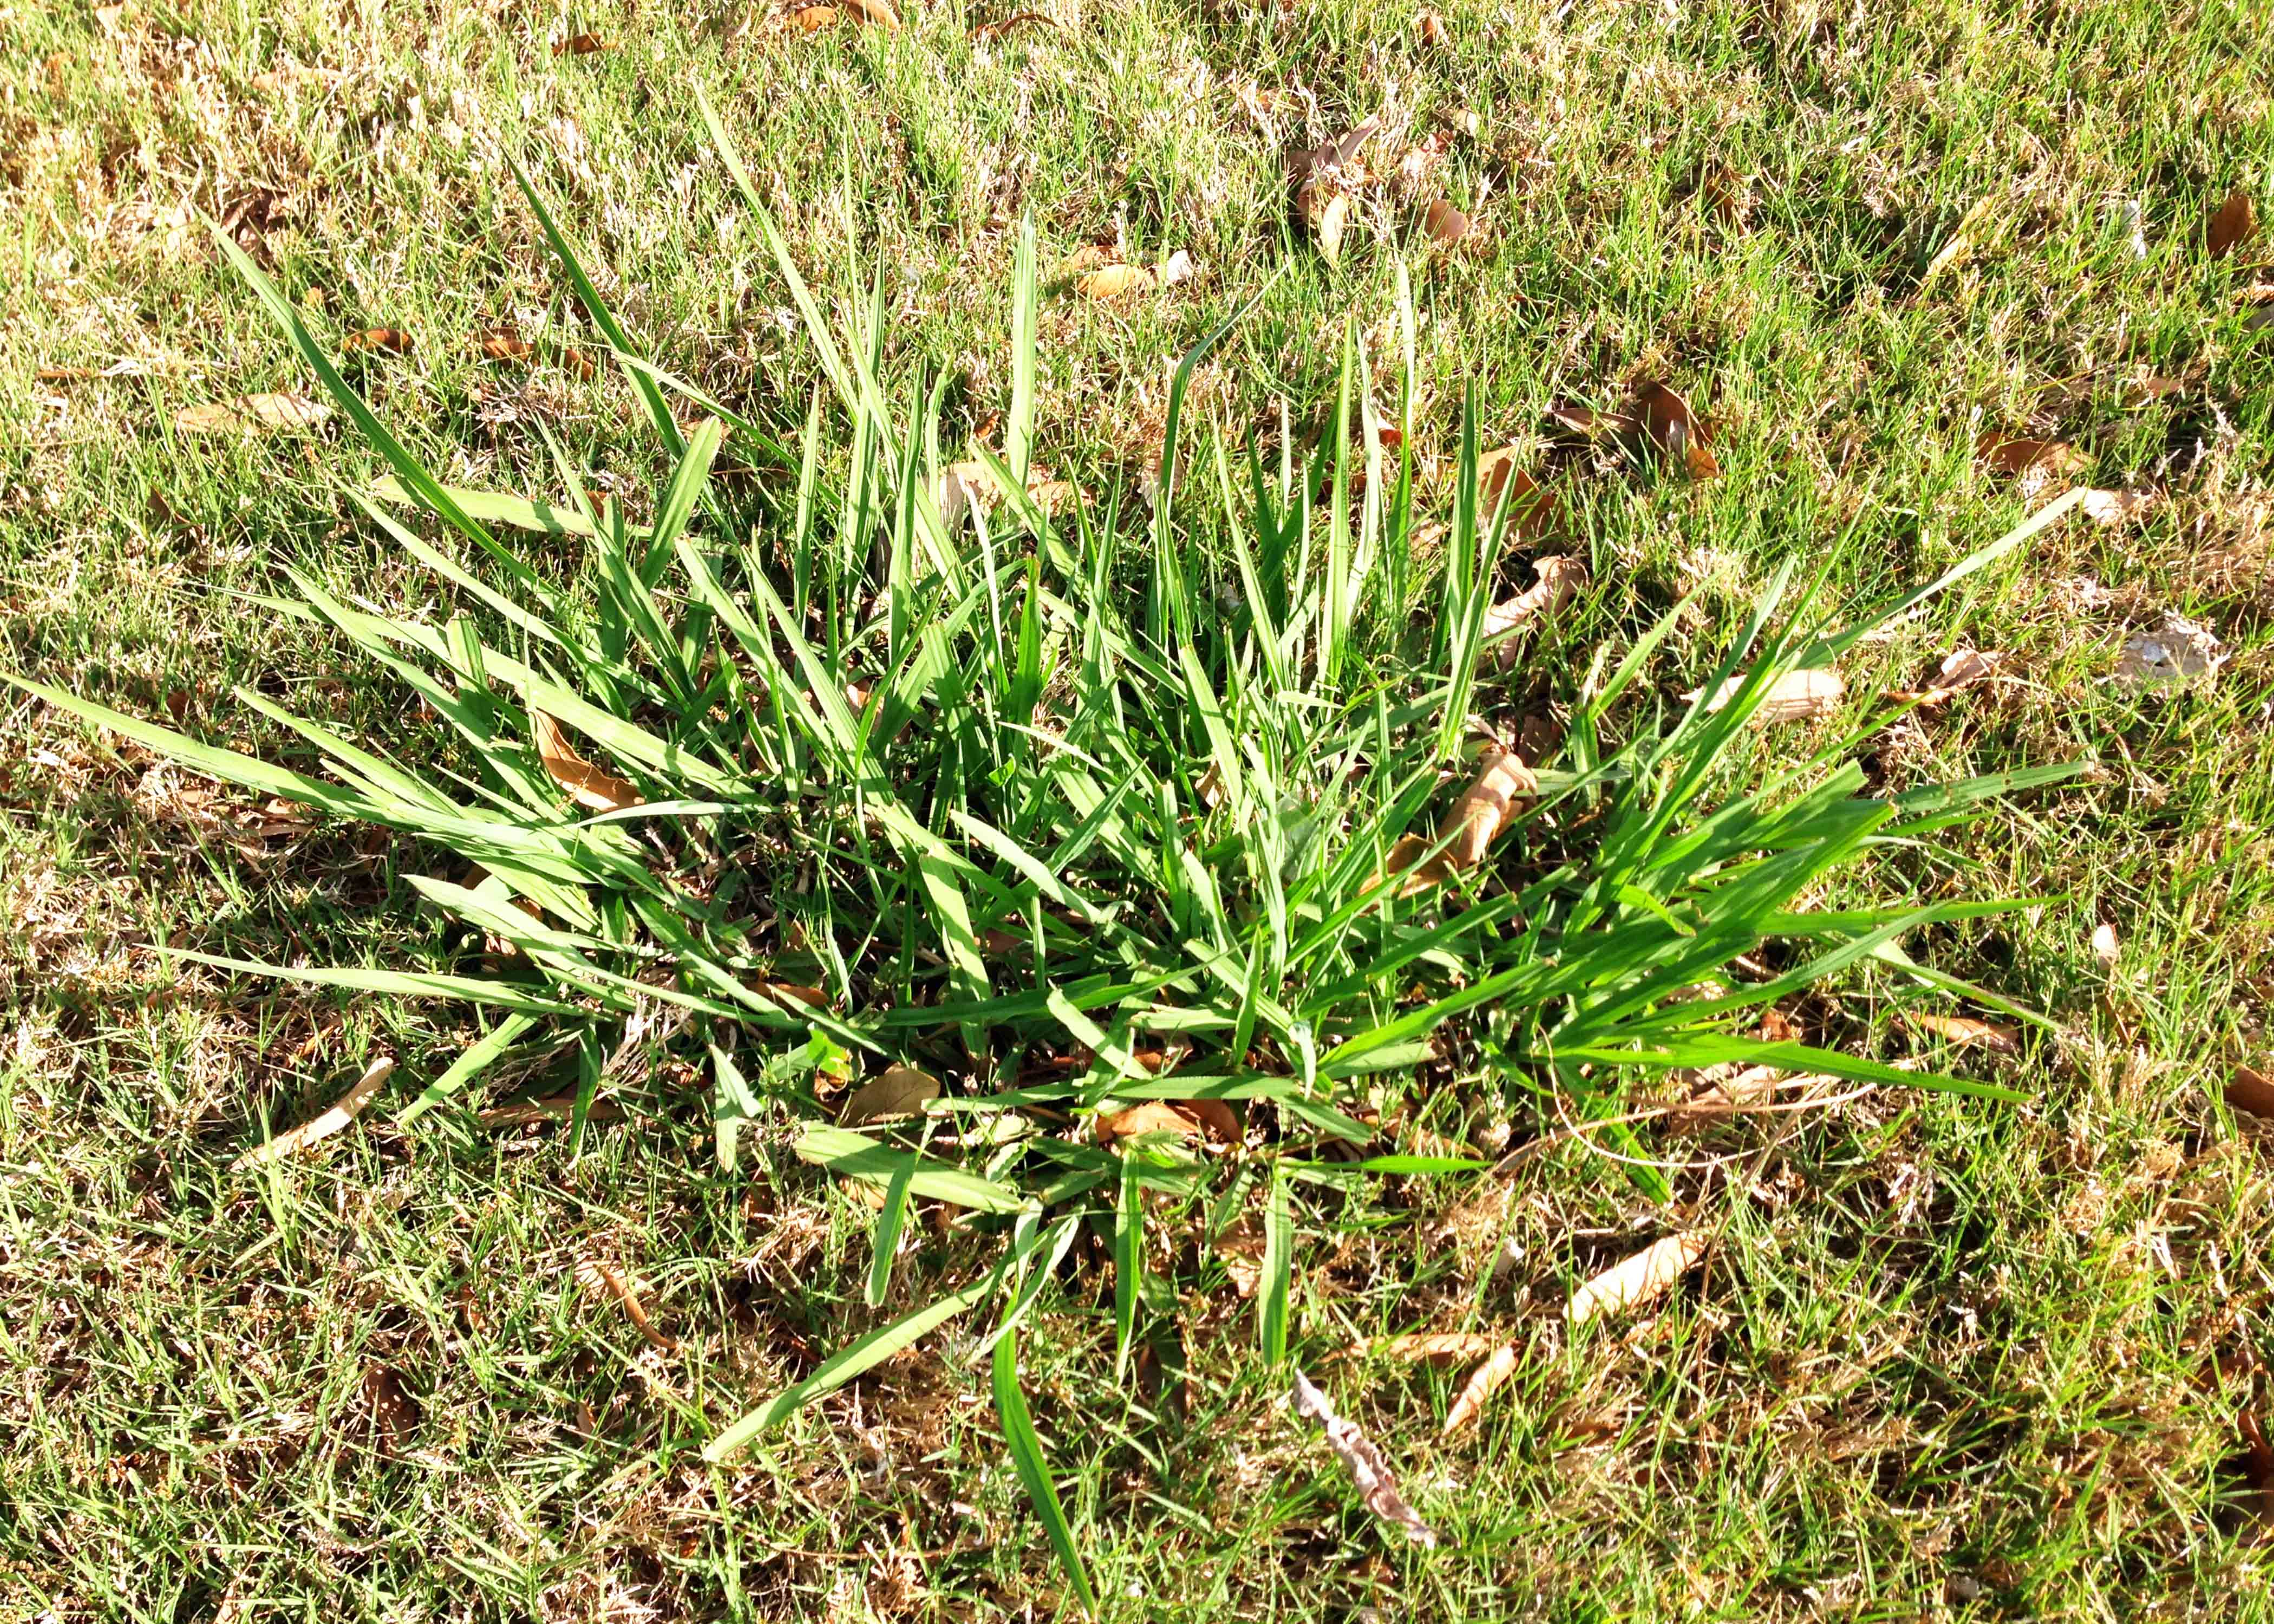 Weeds in grass with light white fuzzy bugs in flour or breadcrumbs..